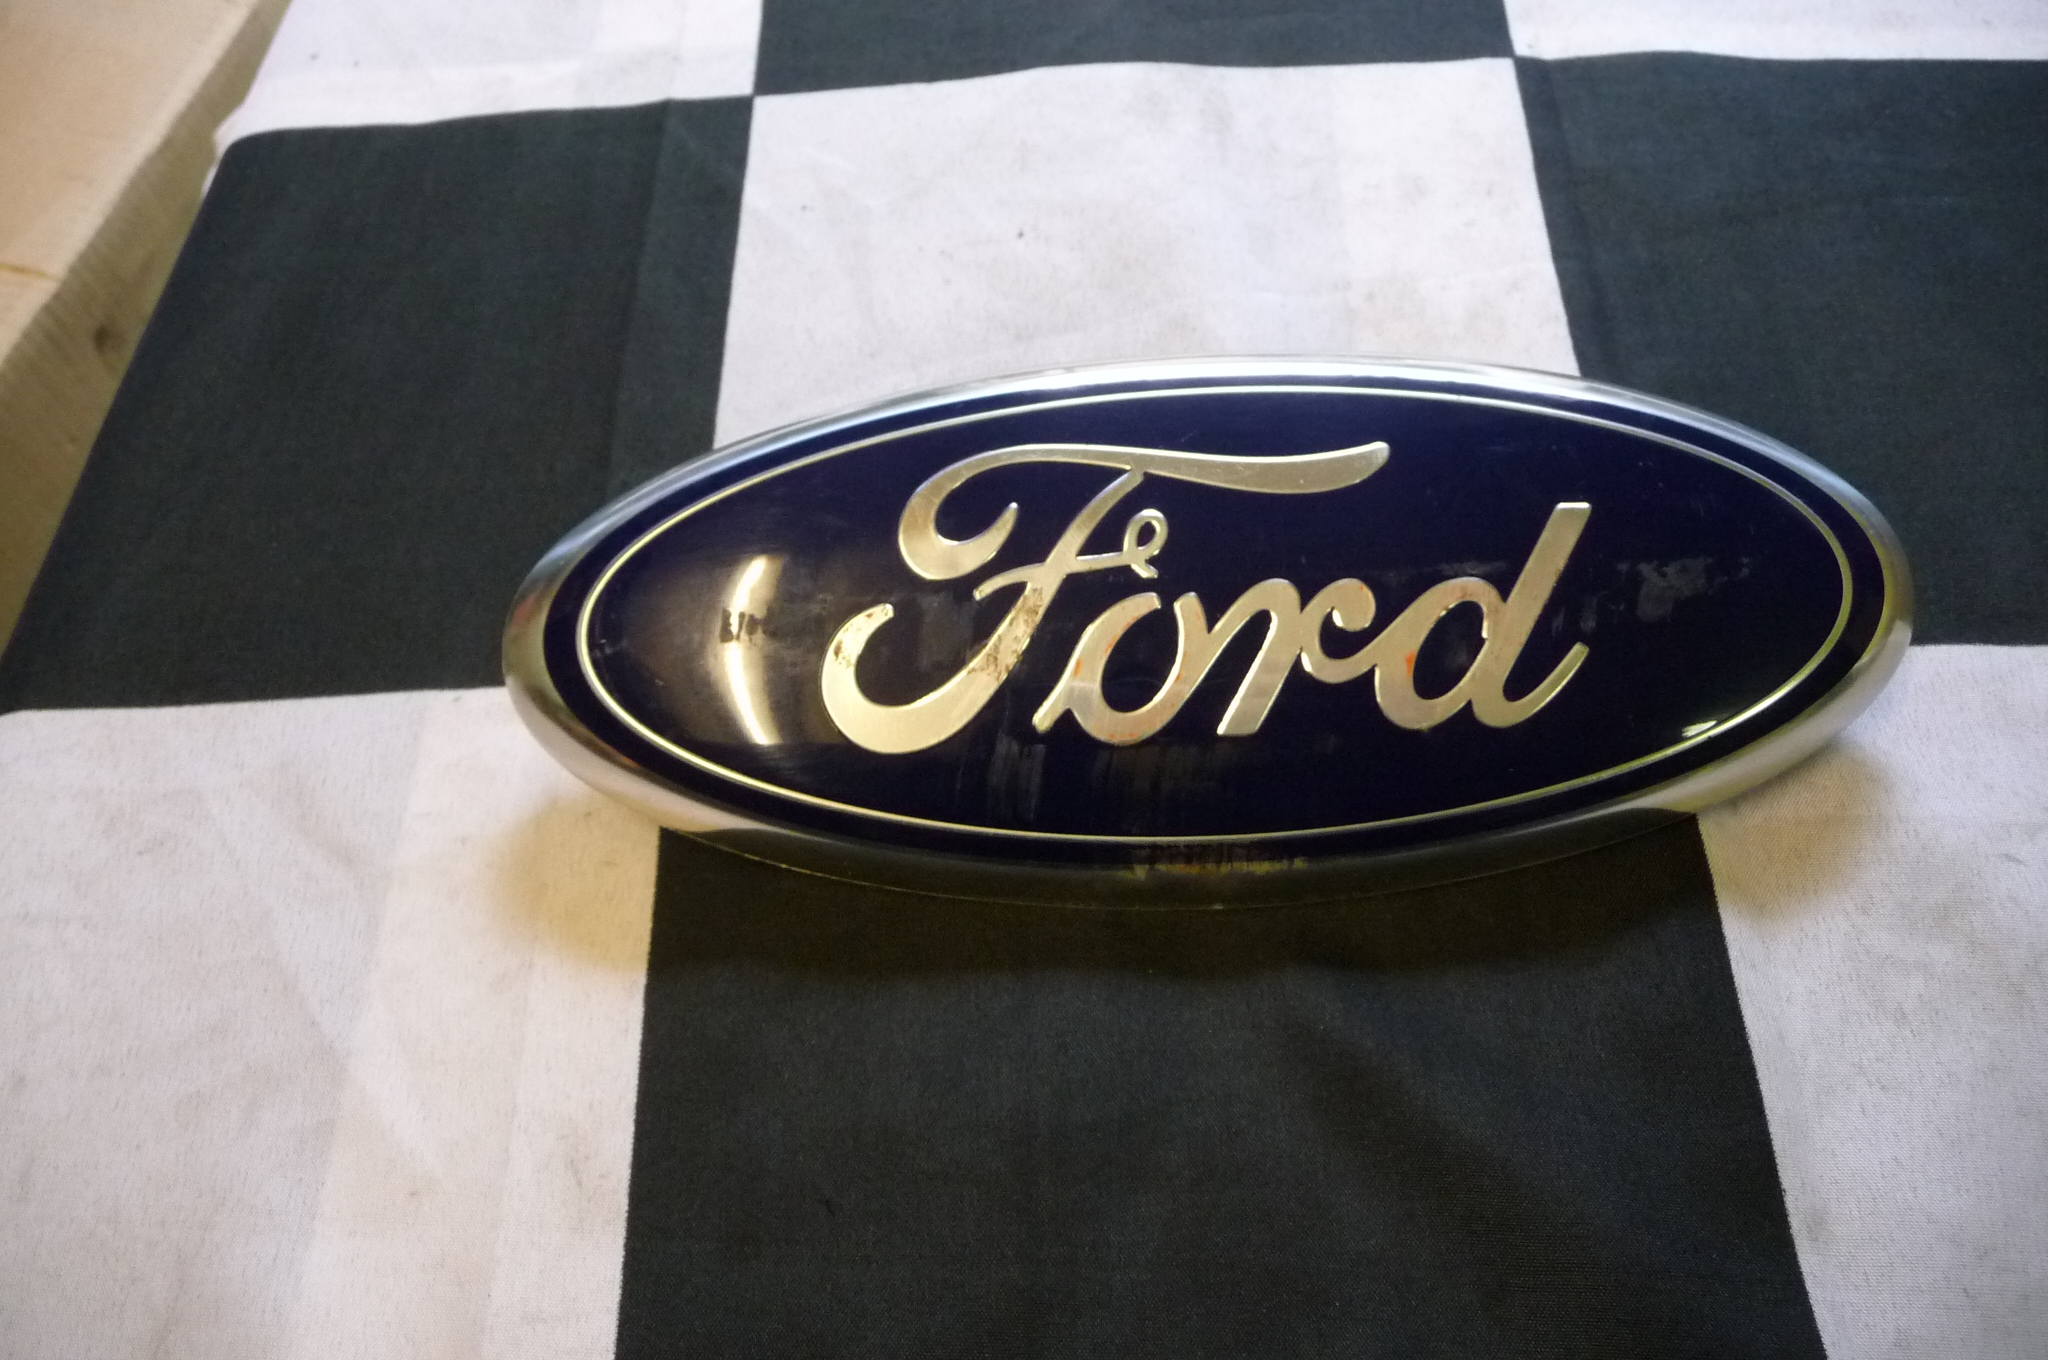 Ford Edge Flex Taurus X Front Grill Emblem Logo Badge Sign Nameplate Btz